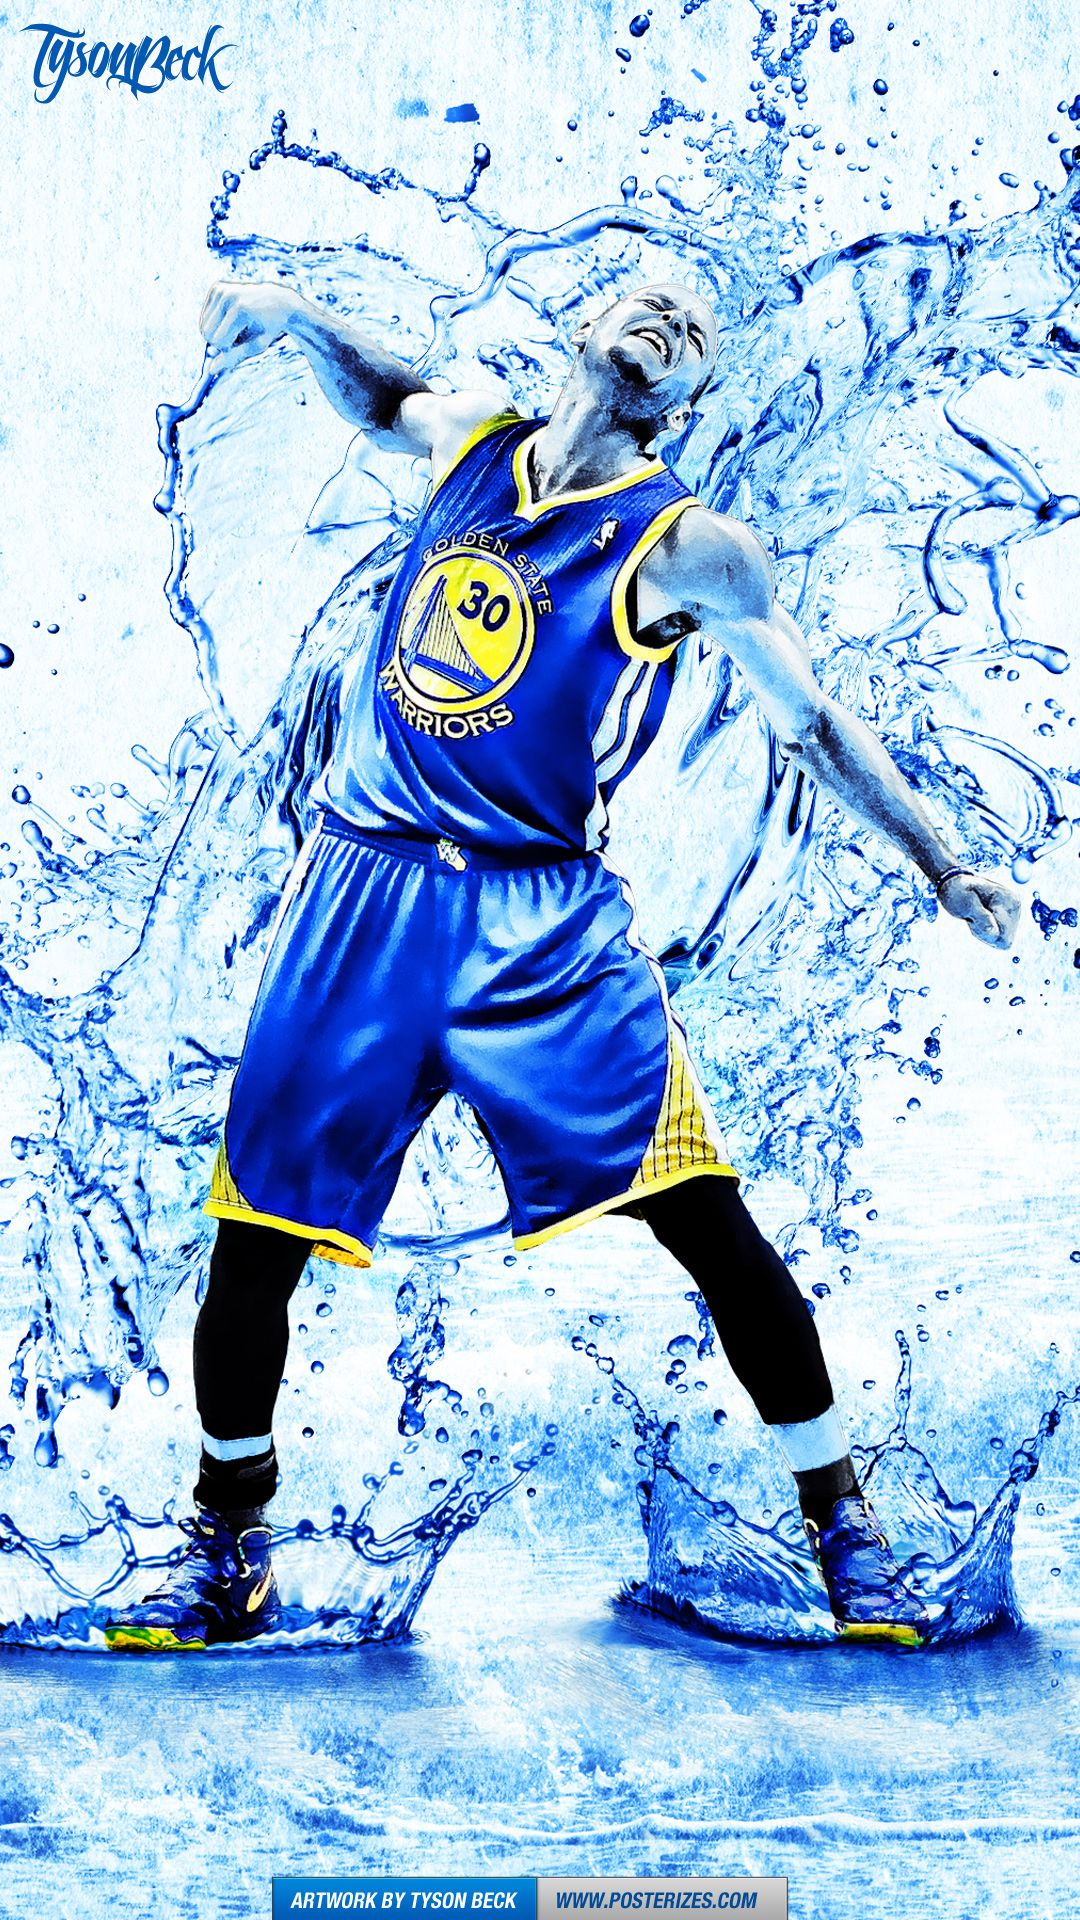 Stephen Curry \'Splash\' Wallpaper Posterizes NBA